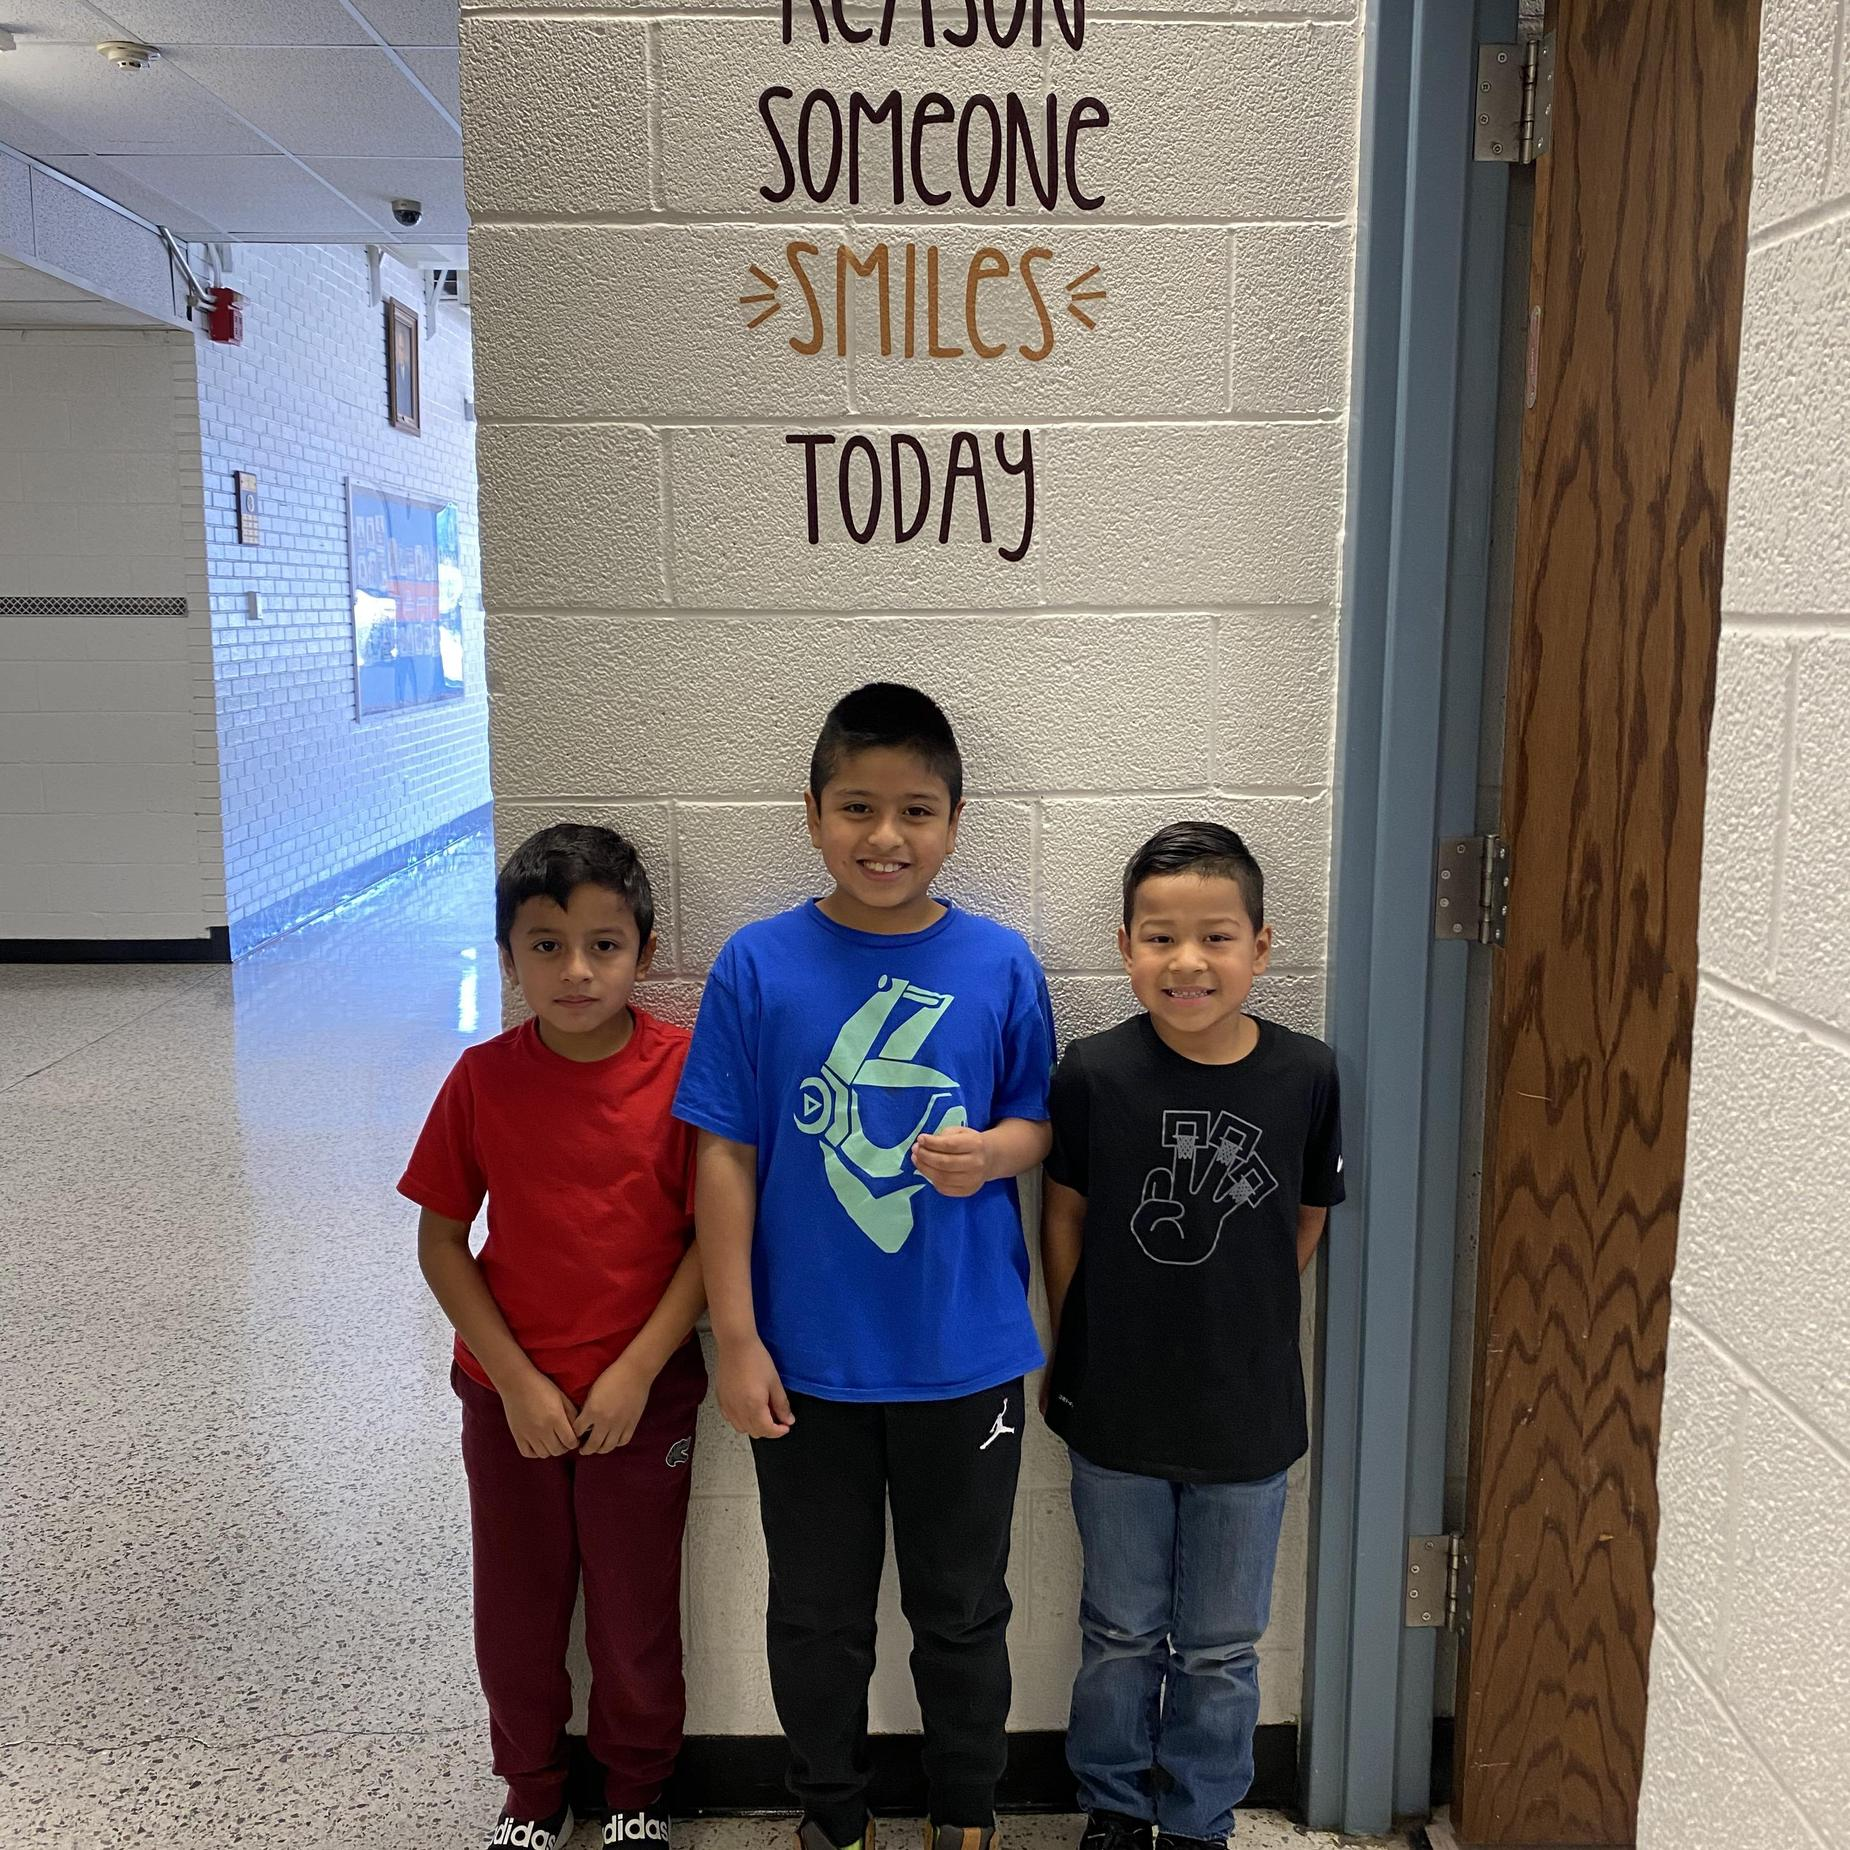 A group of three students smiling.